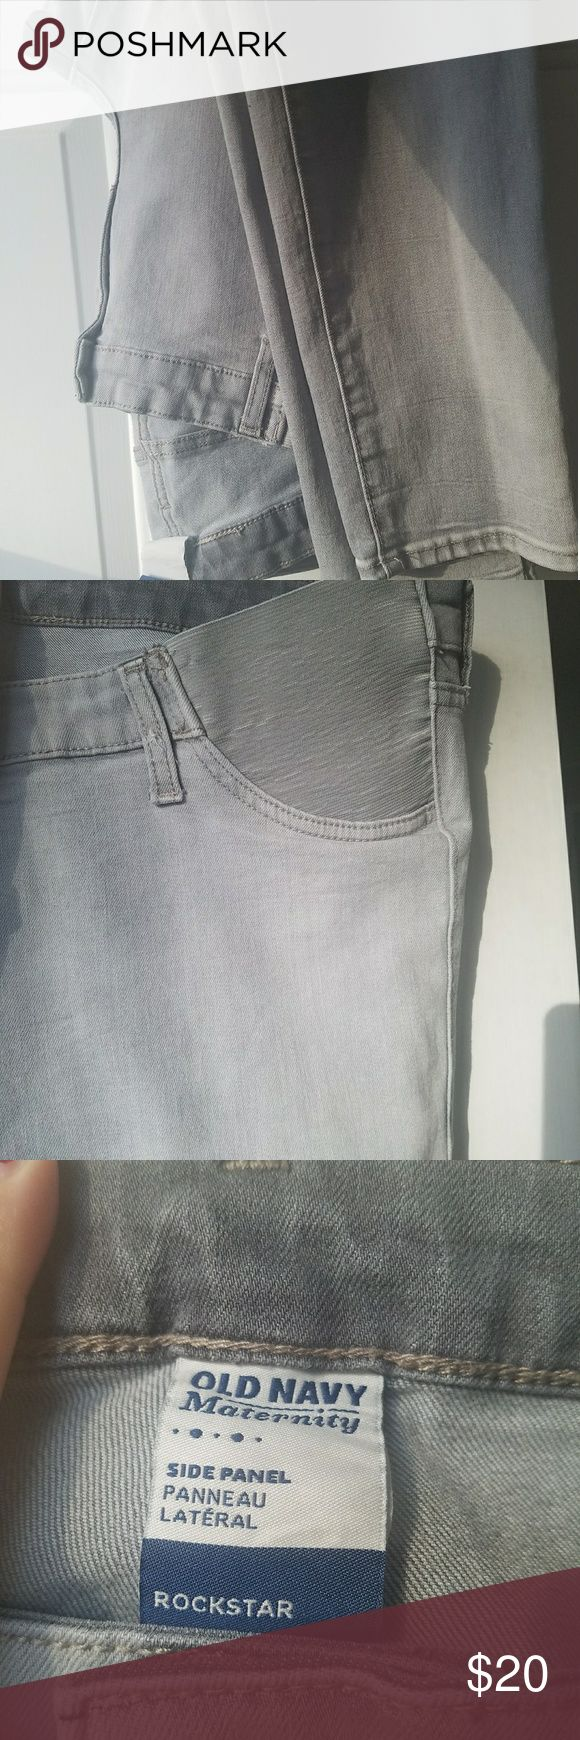 Old Navy Rockstar Maternity jeans - size 14 EUC - worn a handful of times. Grey distressed stretch skinny fit jeans.  Side panel. Incredibly comfortable. Can be dressed up or down. Old Navy Jeans Skinny